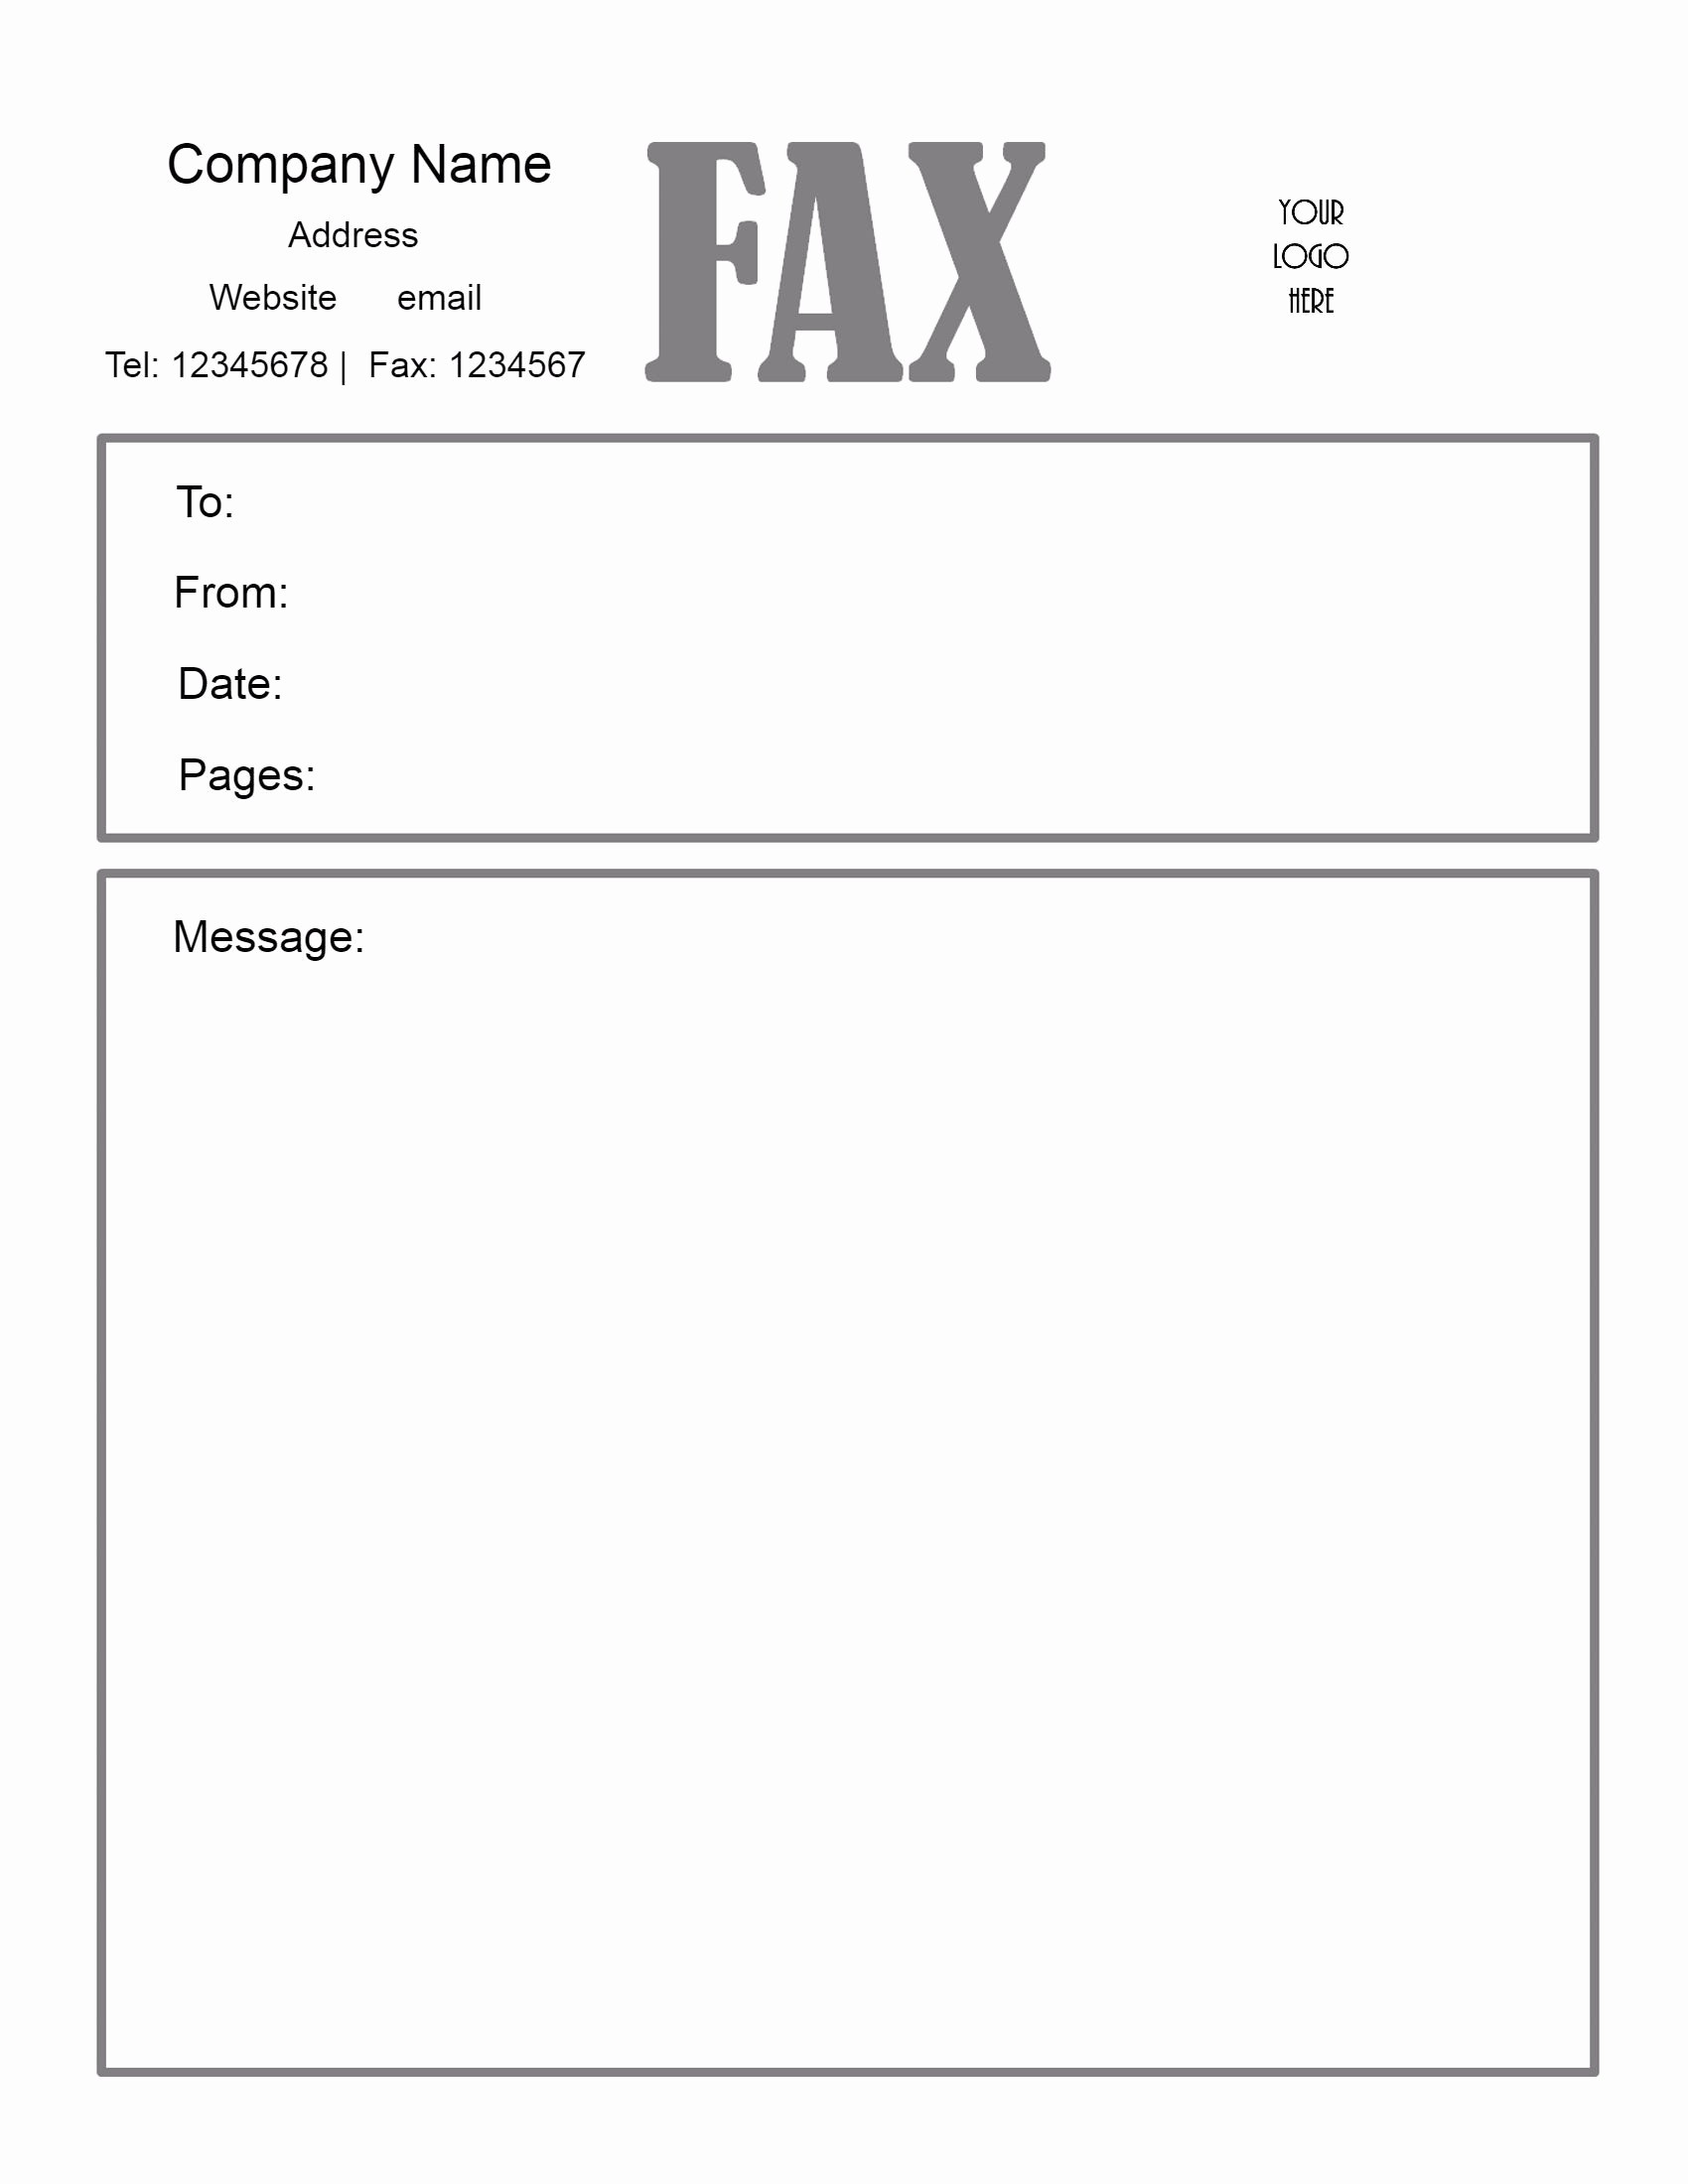 Fax Cover Sheet Sample Pdf Unique Fax Cover Sheet – Download Fax Cover Sheet Fax Cover